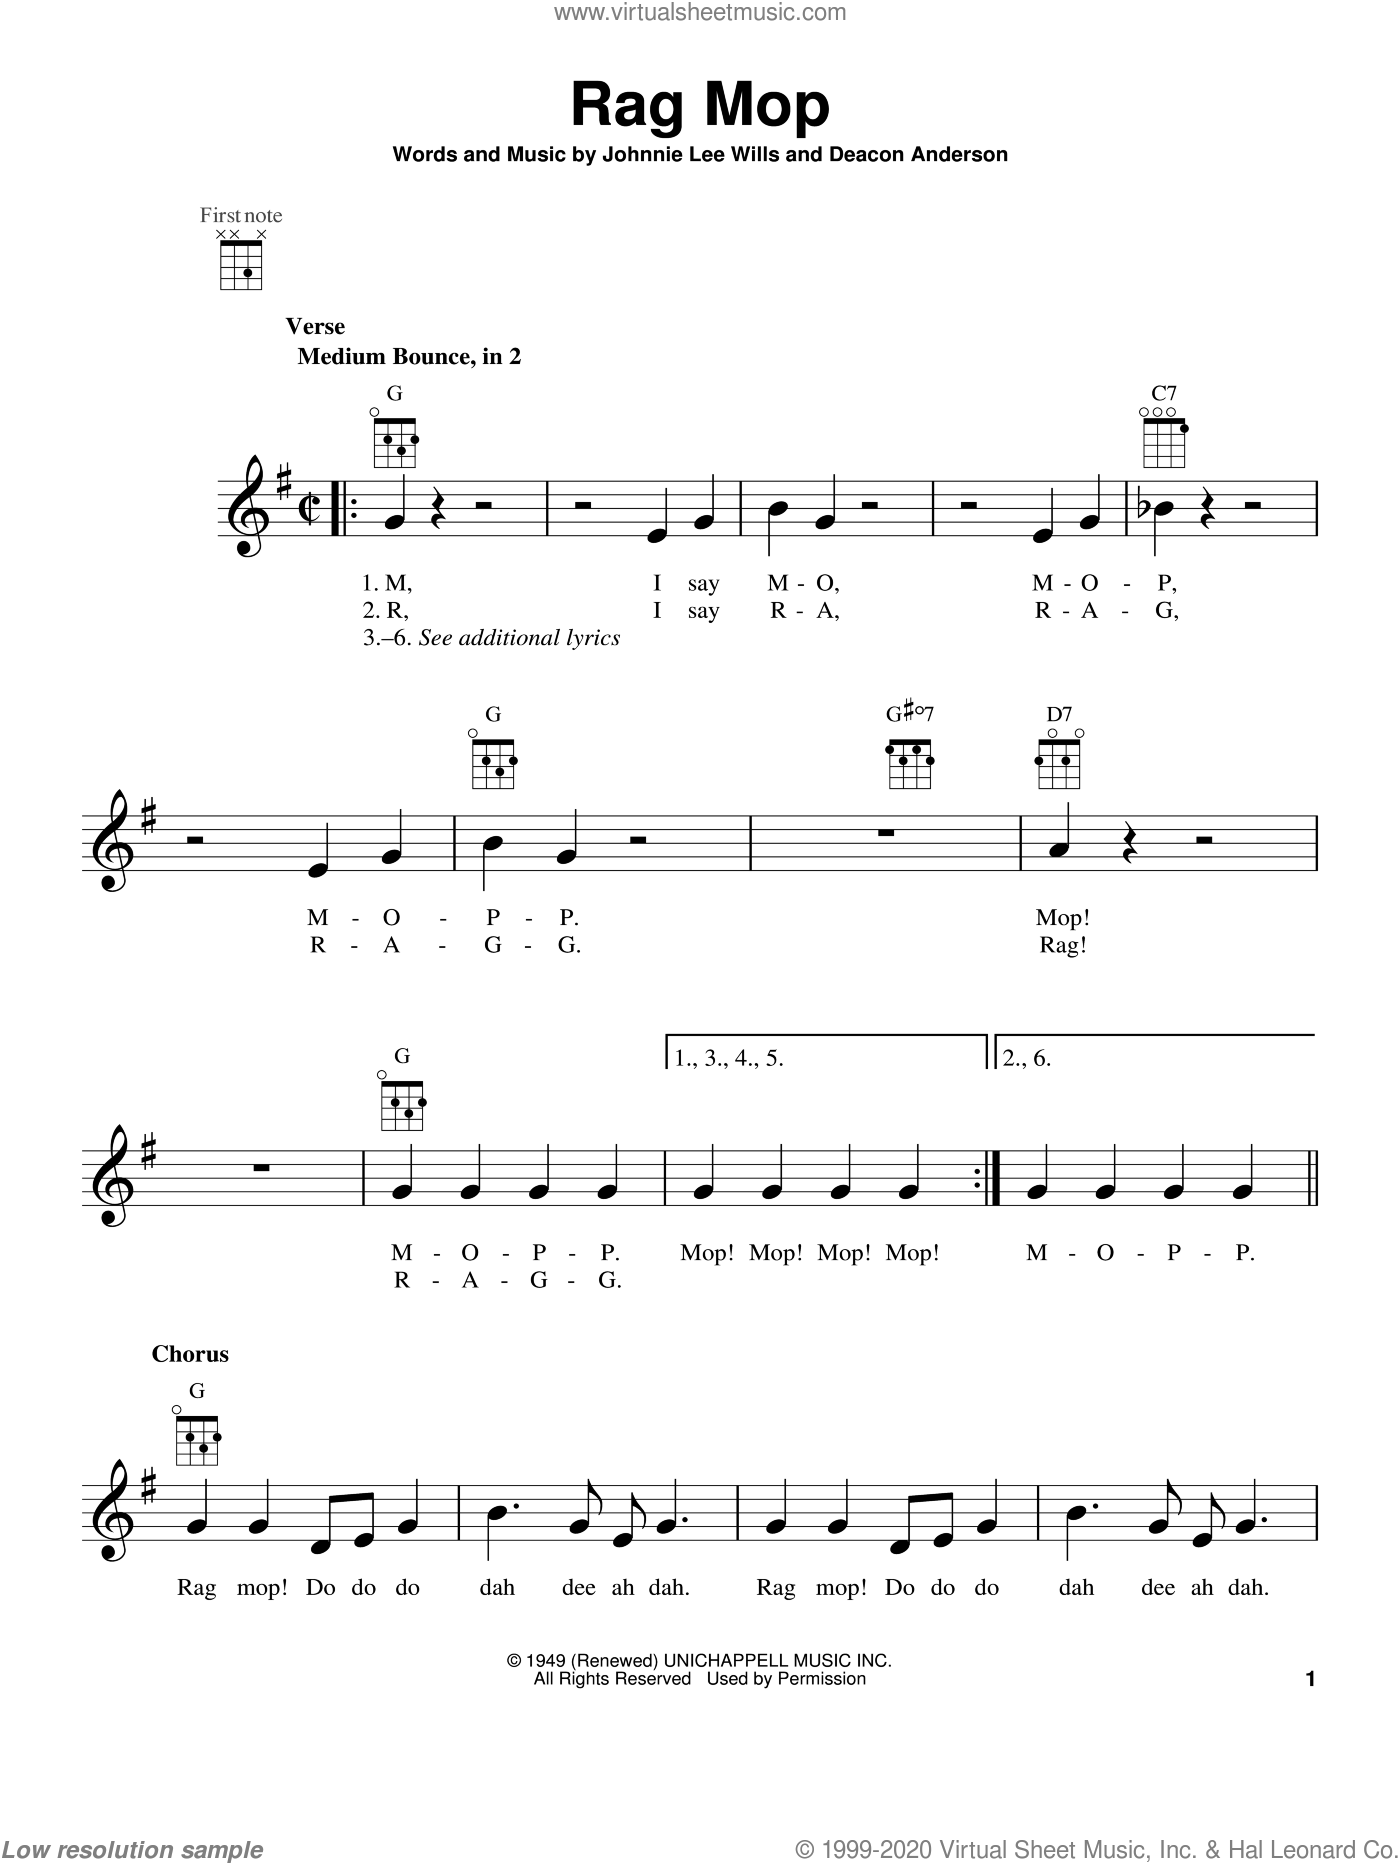 Rag Mop sheet music for ukulele by Deacon Anderson